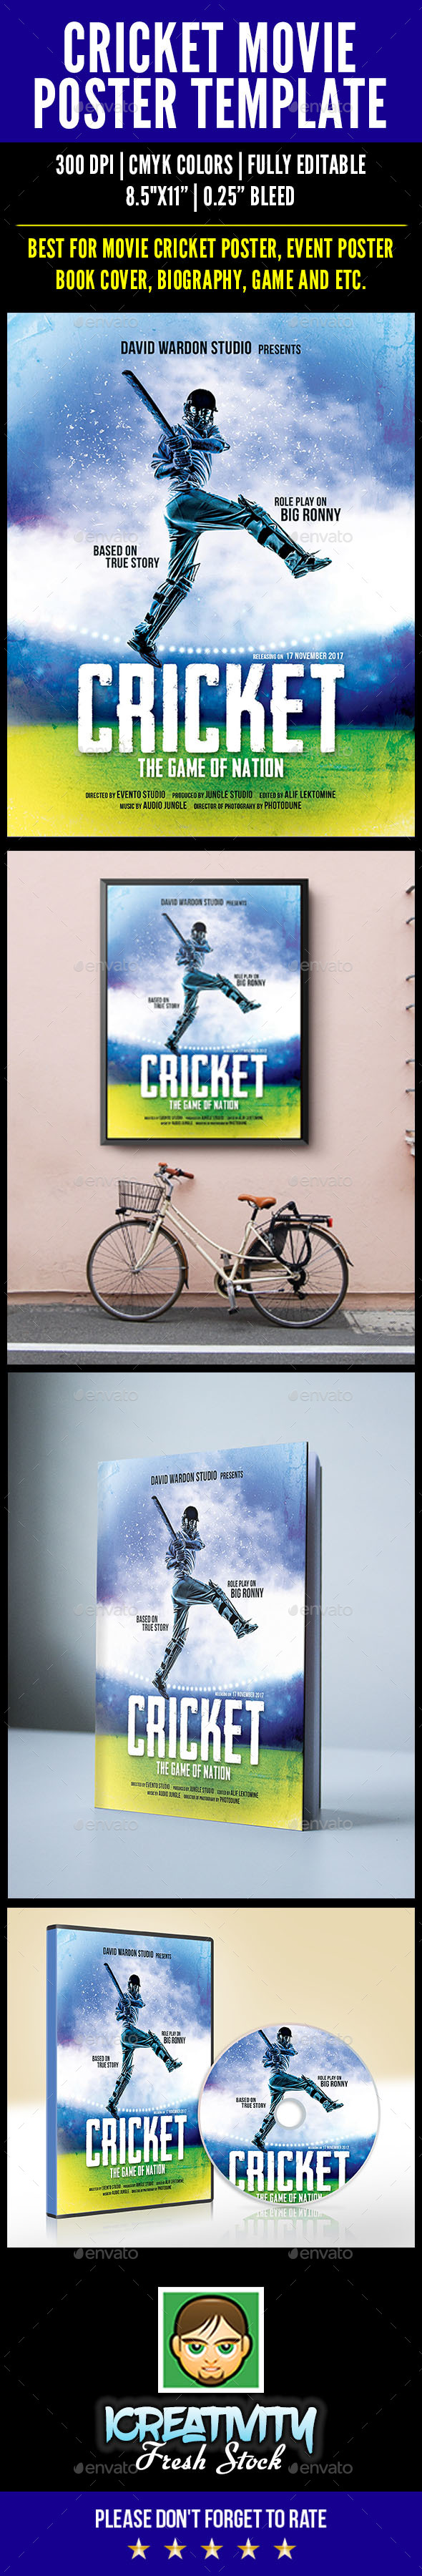 Cricket Movie Poster - Sports Events